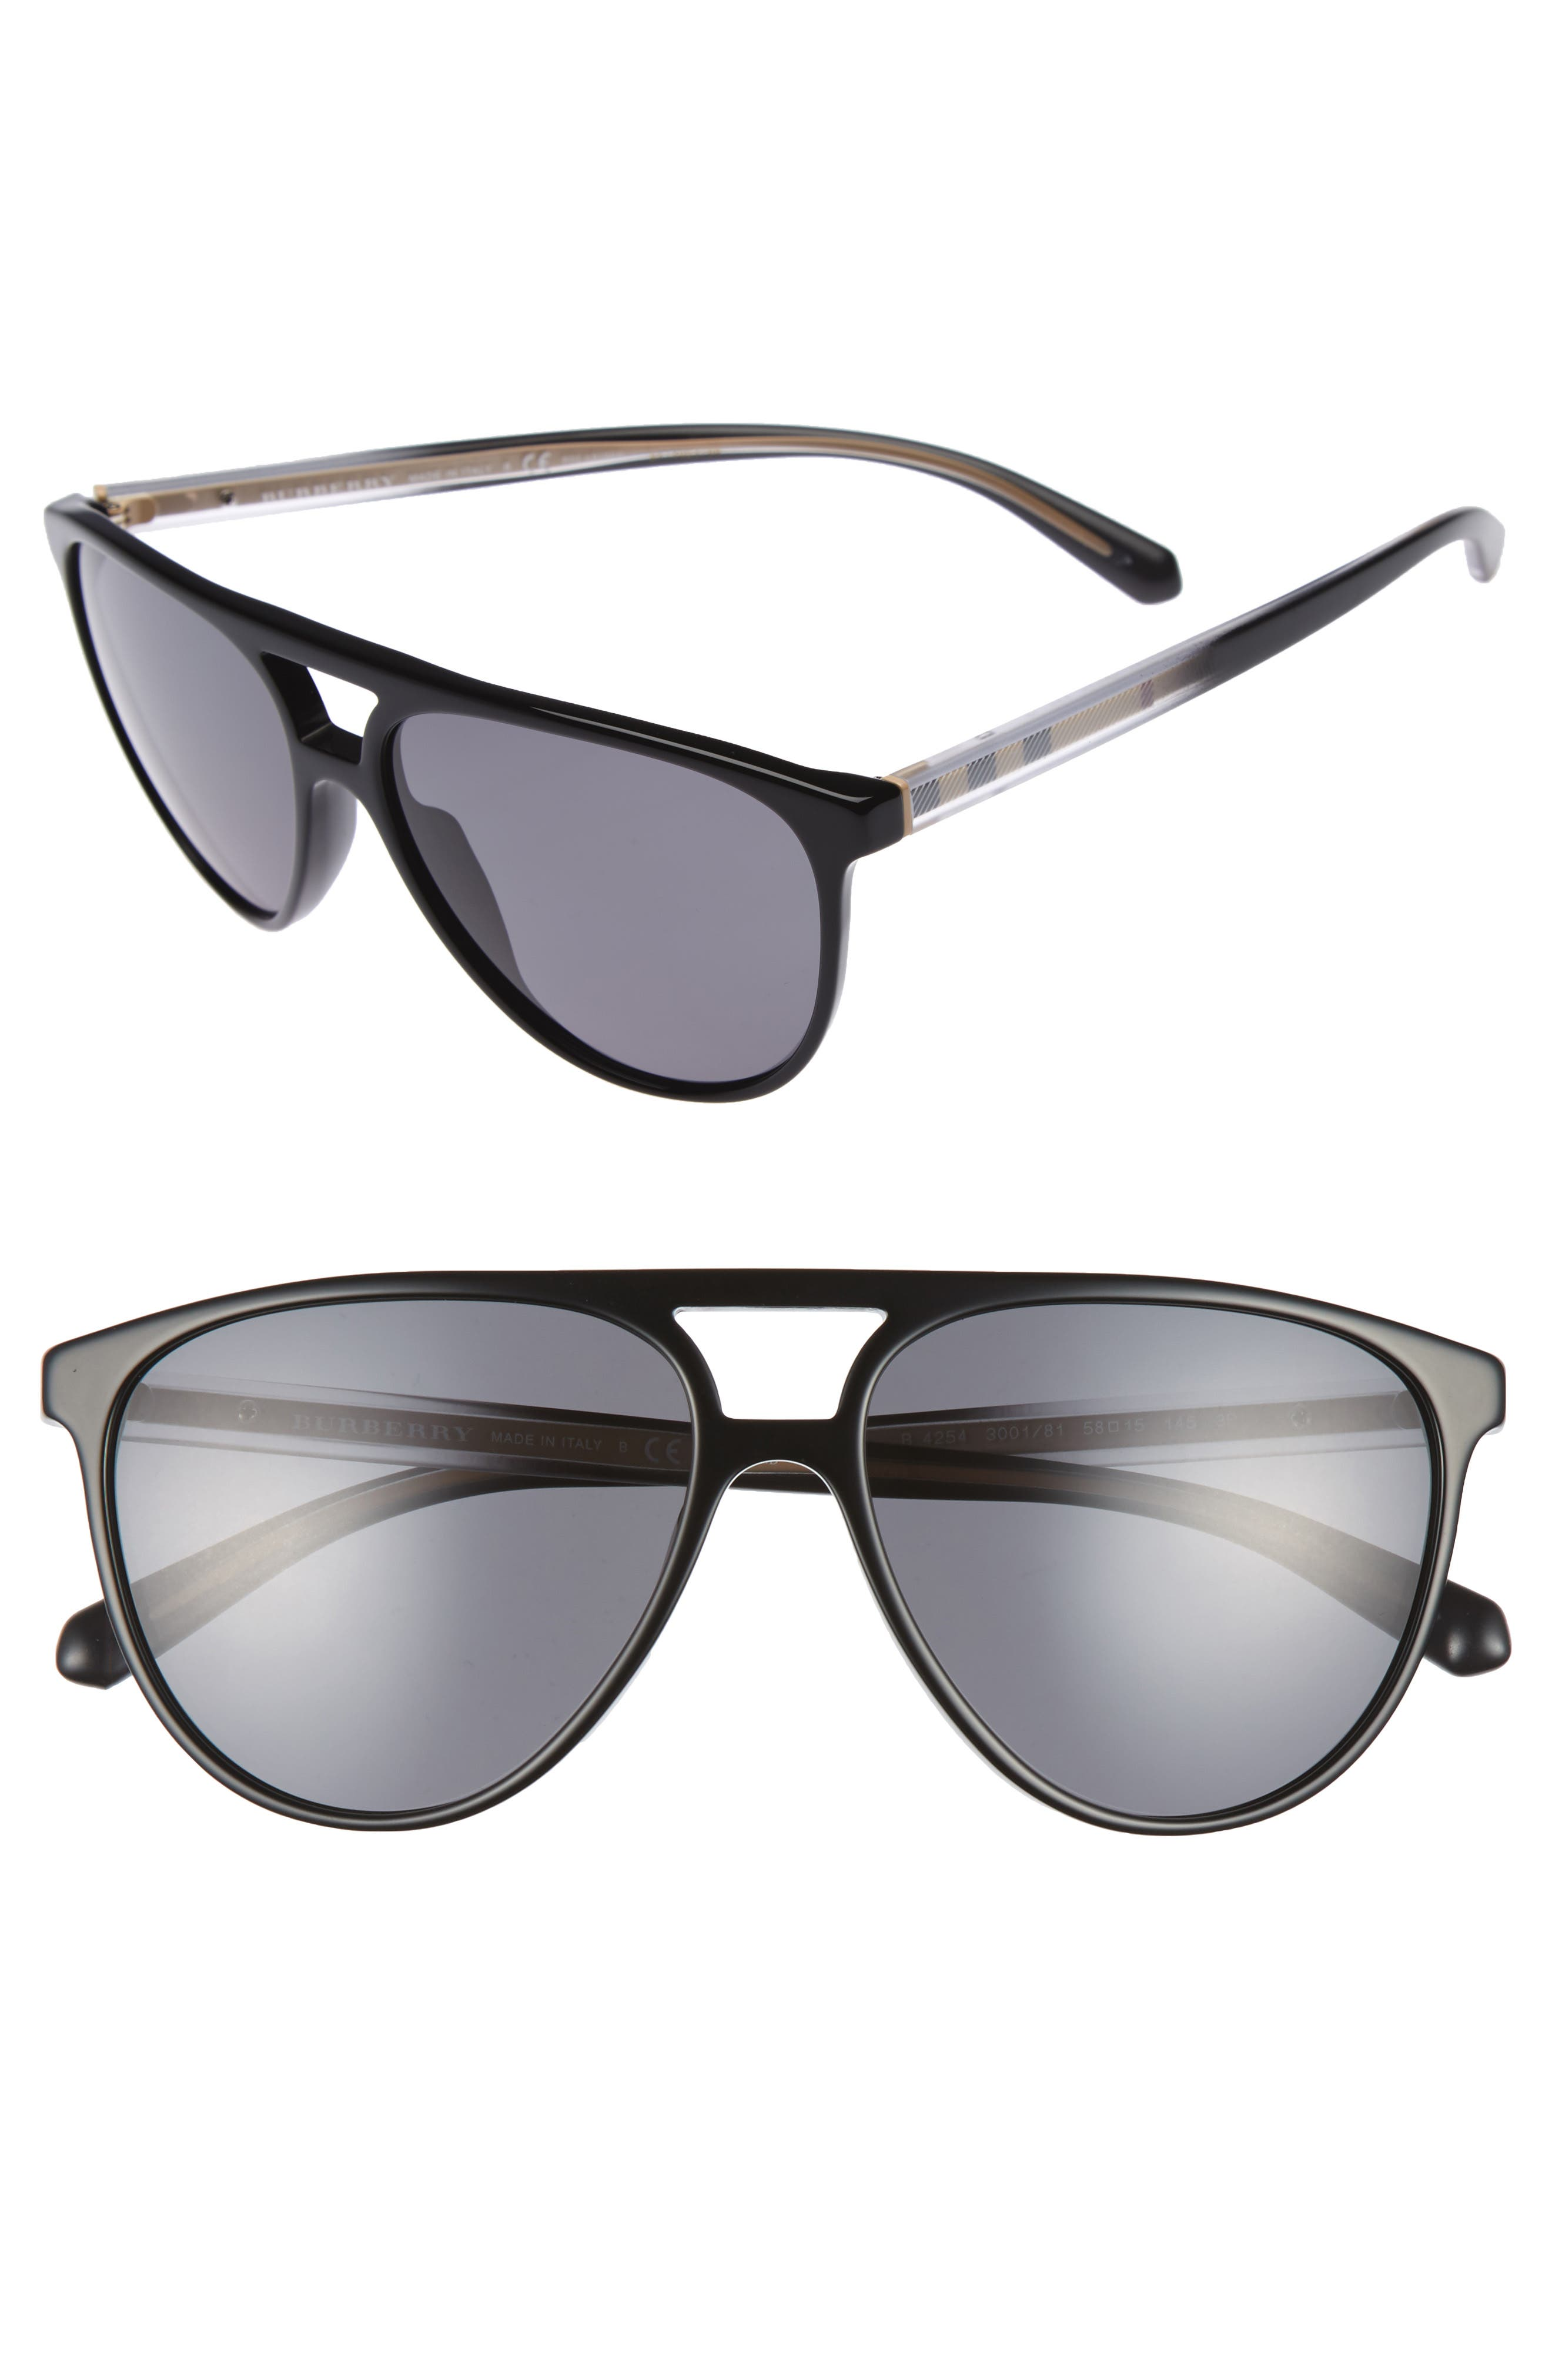 Alternate Image 1 Selected - Burberry 58mm Polarized Aviator Sunglasses